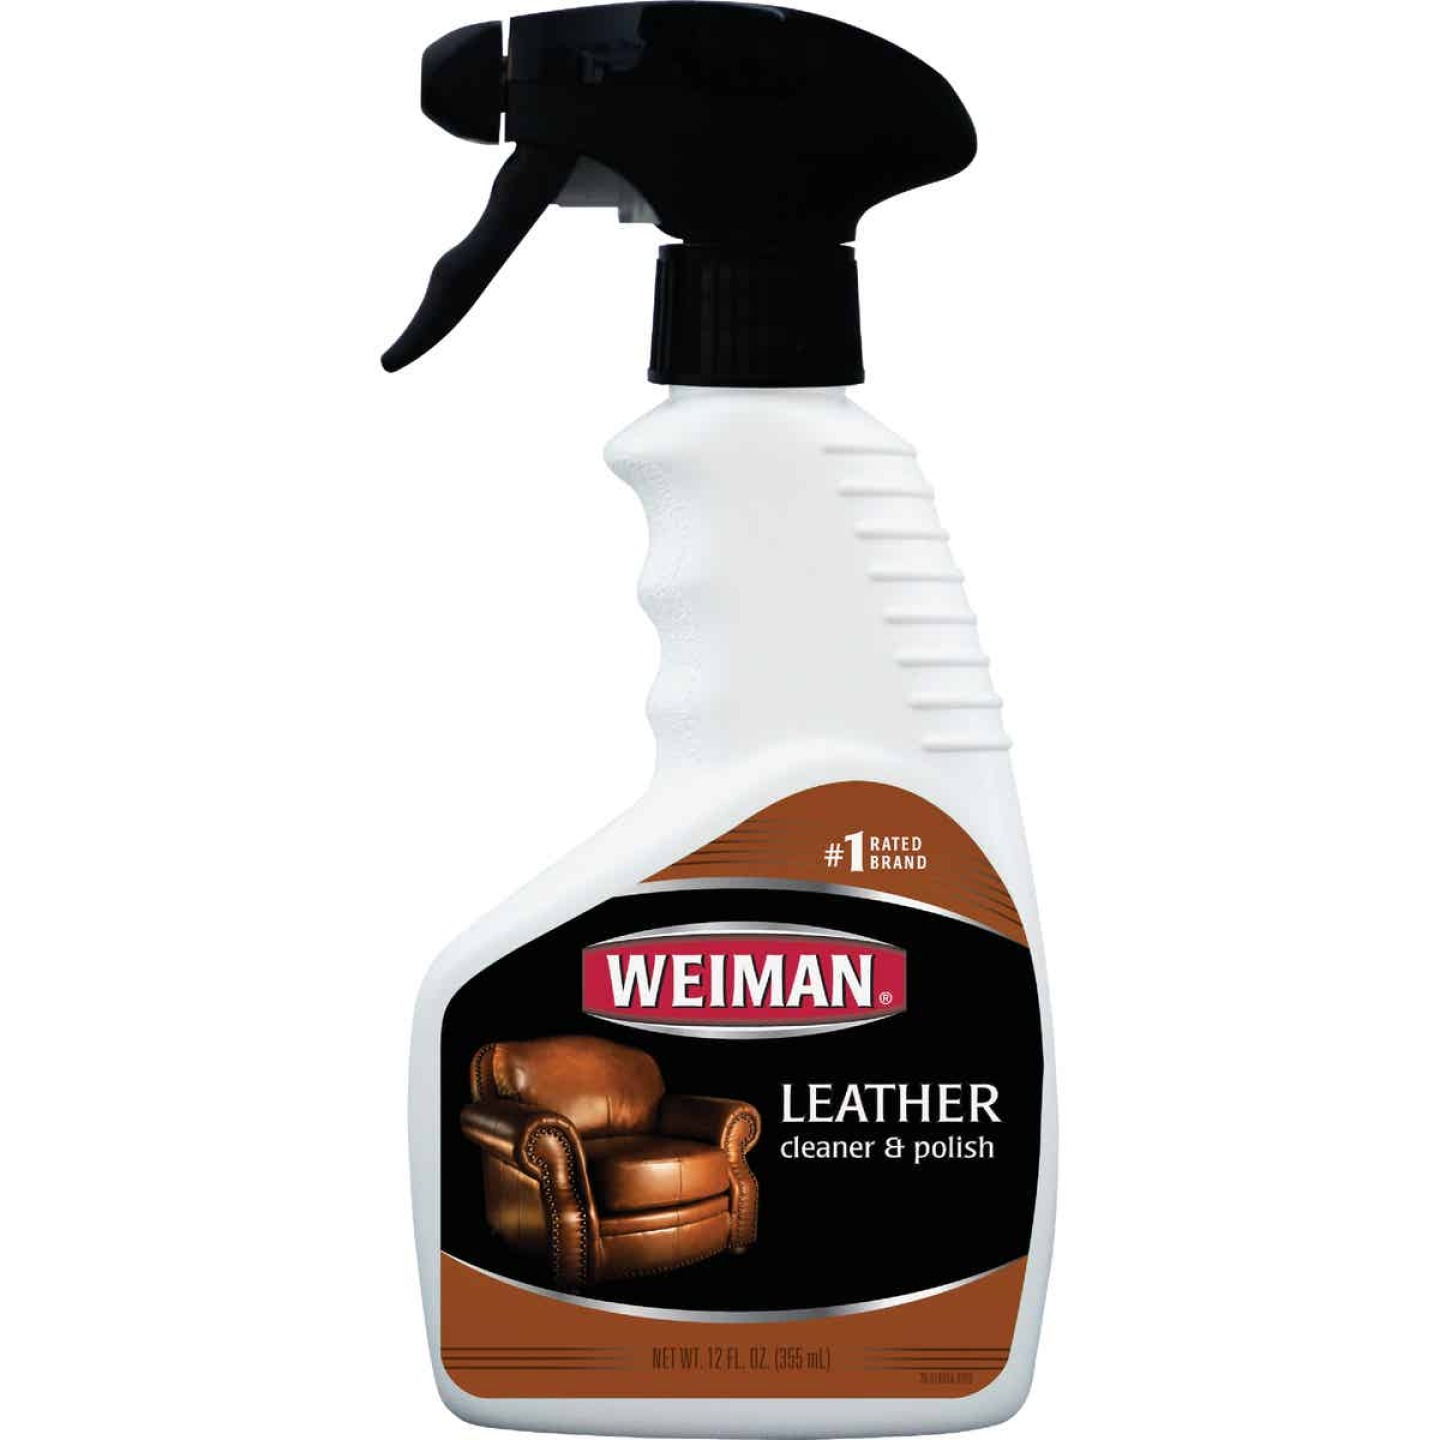 Weiman 12 Oz. Trigger Spray Leather Care Cleaner & Polish Image 1